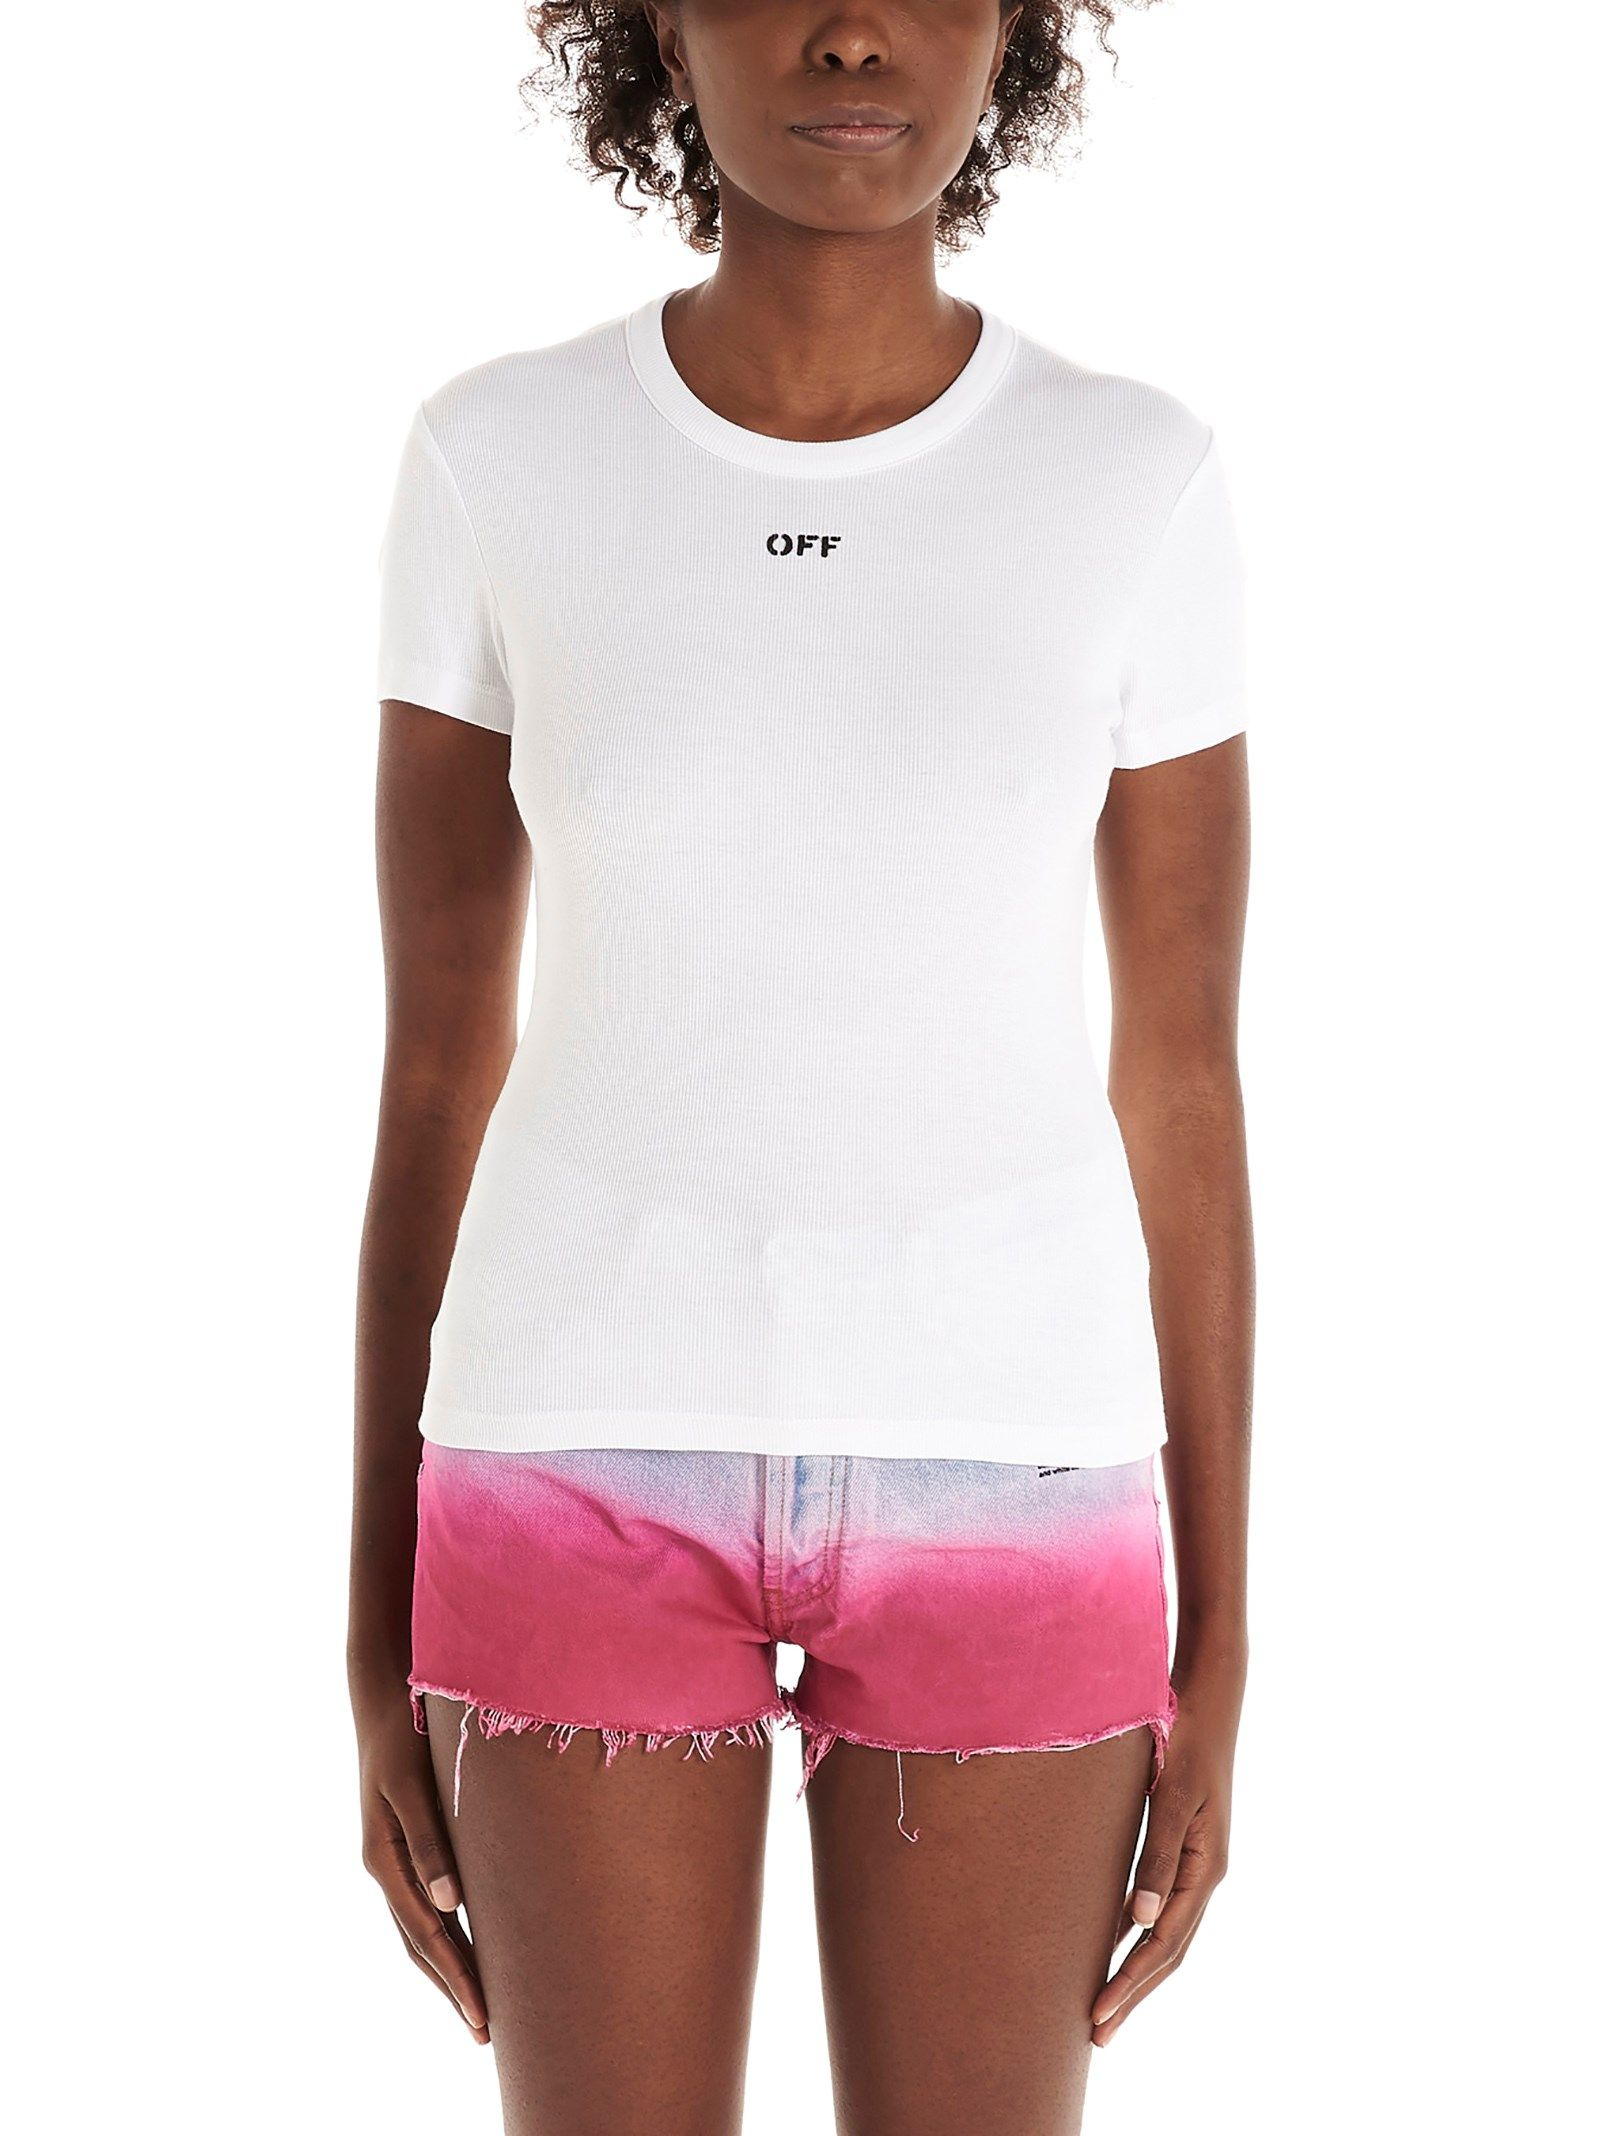 Off-White OFF-WHITE WOMEN'S OWAA065S21JER0010100 WHITE OTHER MATERIALS T-SHIRT